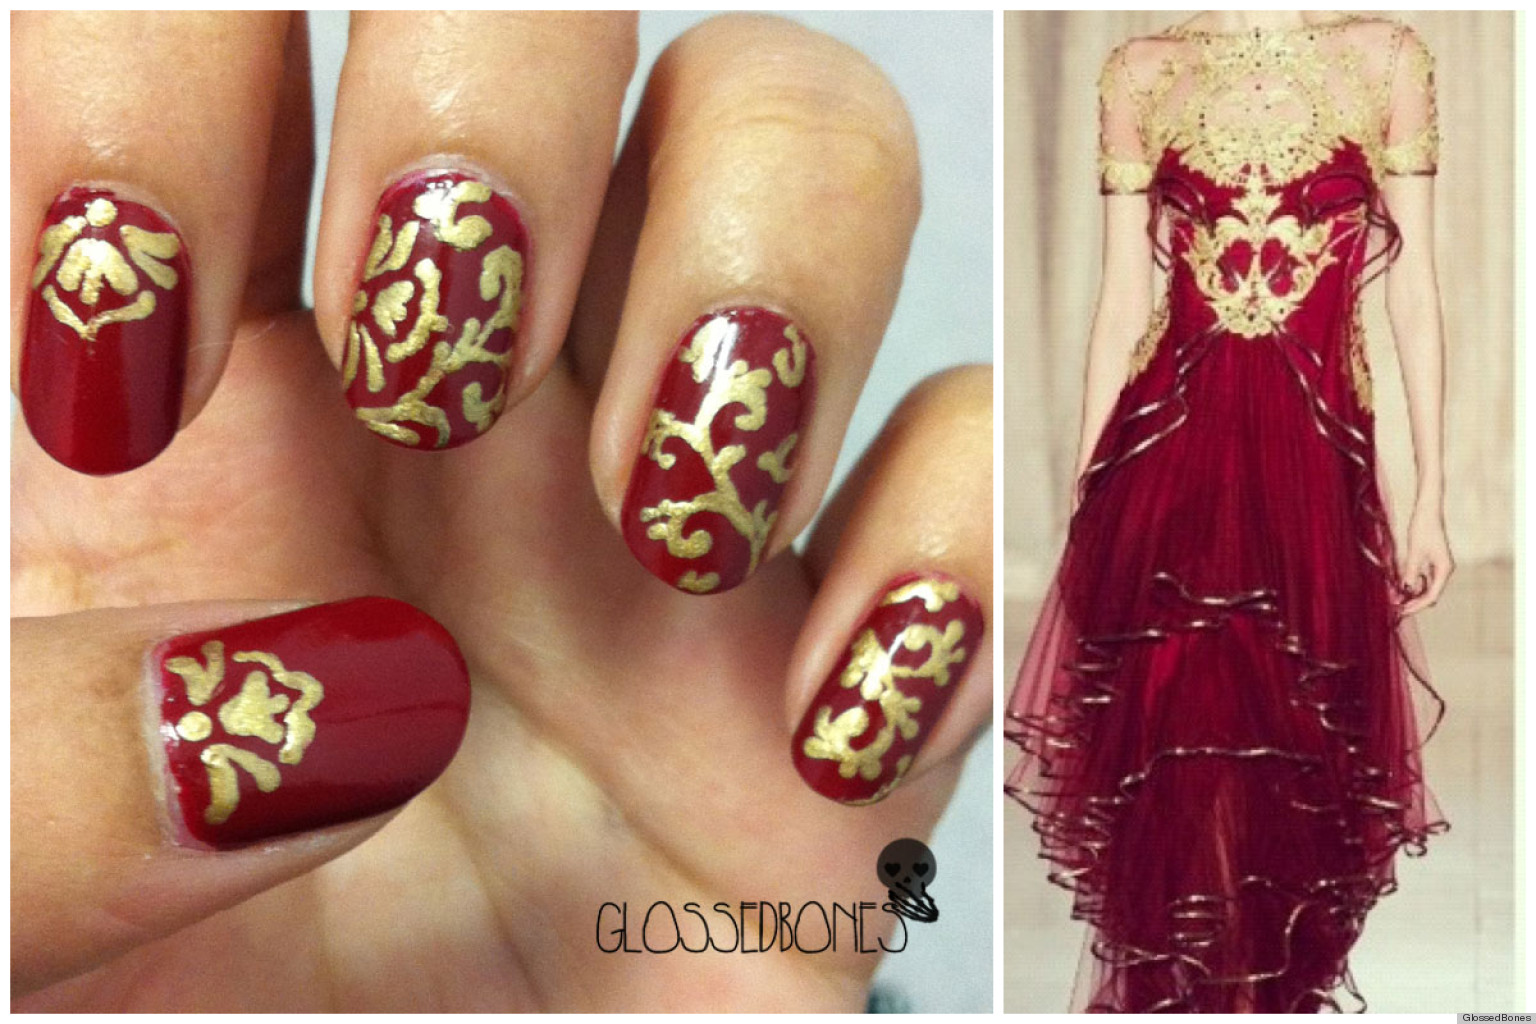 DIY Nail Ideas: Marchesa Nail Art And More Of Our Weekend Manicures ...